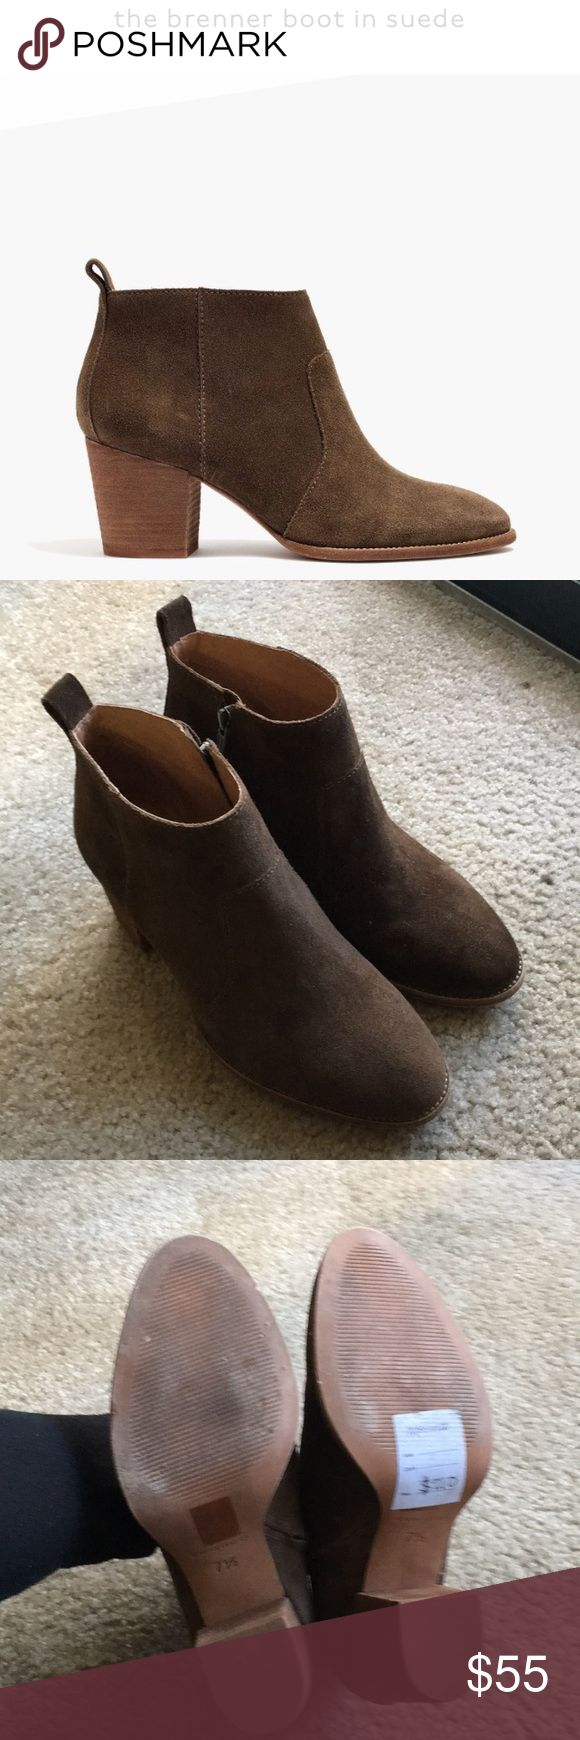 """Madewell suede brenner ankle heeled boot Mink/olive color. Selling because I """"ruined"""" the left boot w/ scotchgard spray. It left streaks through out. the boot is now darker than the right. Not noticeable when wearing but I'm too ocd to deal with it so I'm letting them go. I'm sure it's fixable. tried washing it per instructions online which helped some but i don't have time to really get into it. The right side is also sprayed but came out great. I'm sure more spray on the right will even…"""